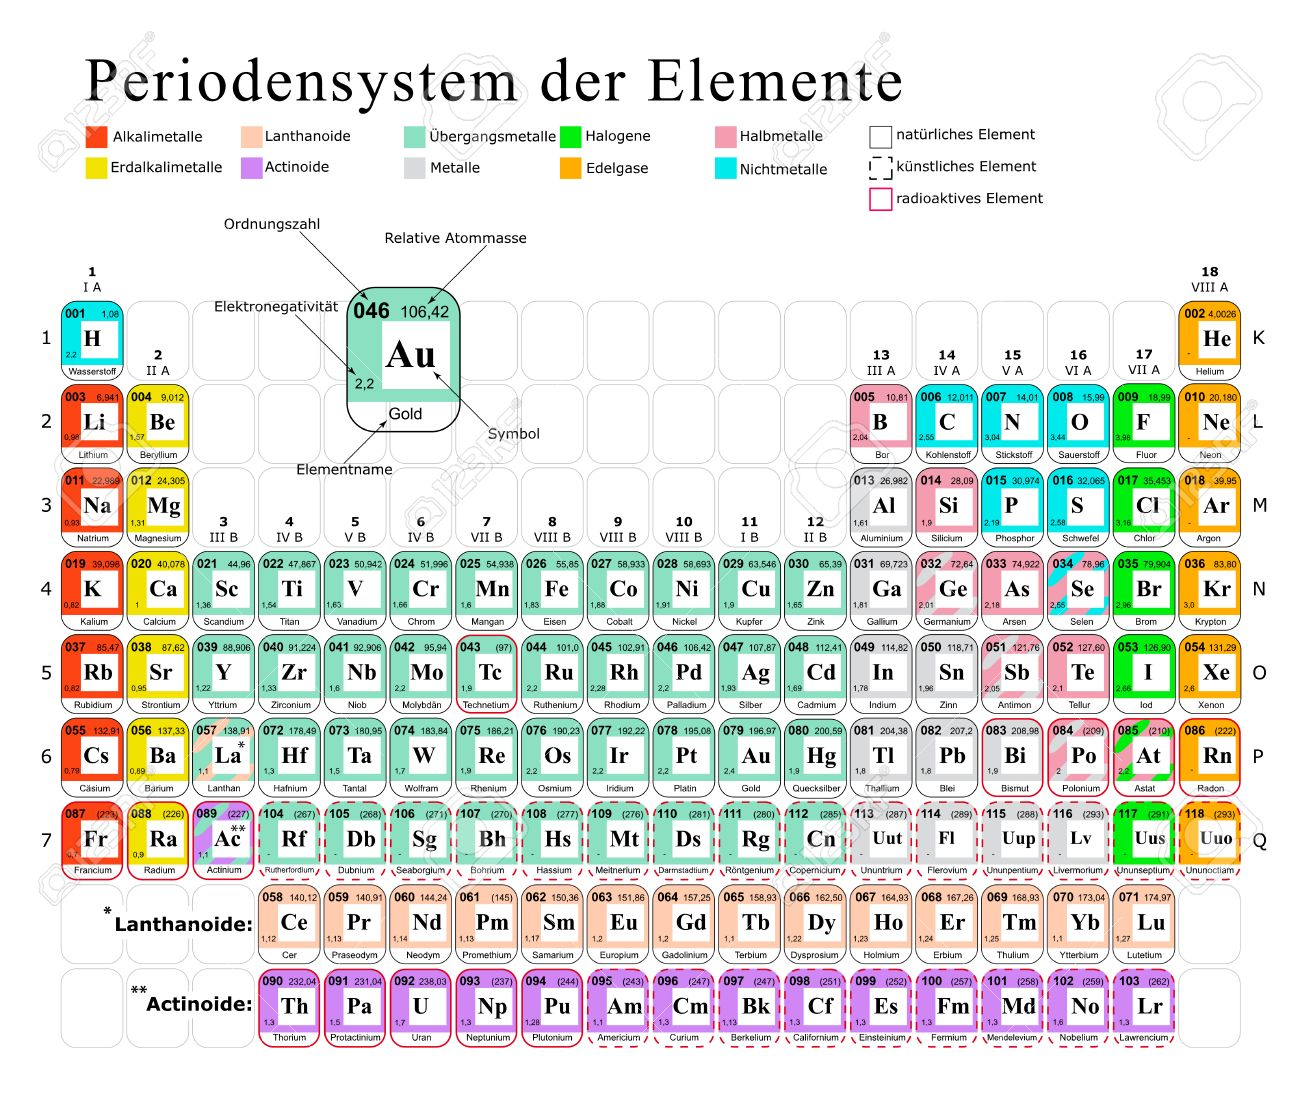 Colorful 2d periodic table of chemical elements wallpaper learning colorful 2d periodic table of chemical elements wallpaper learning and studying in german language urtaz